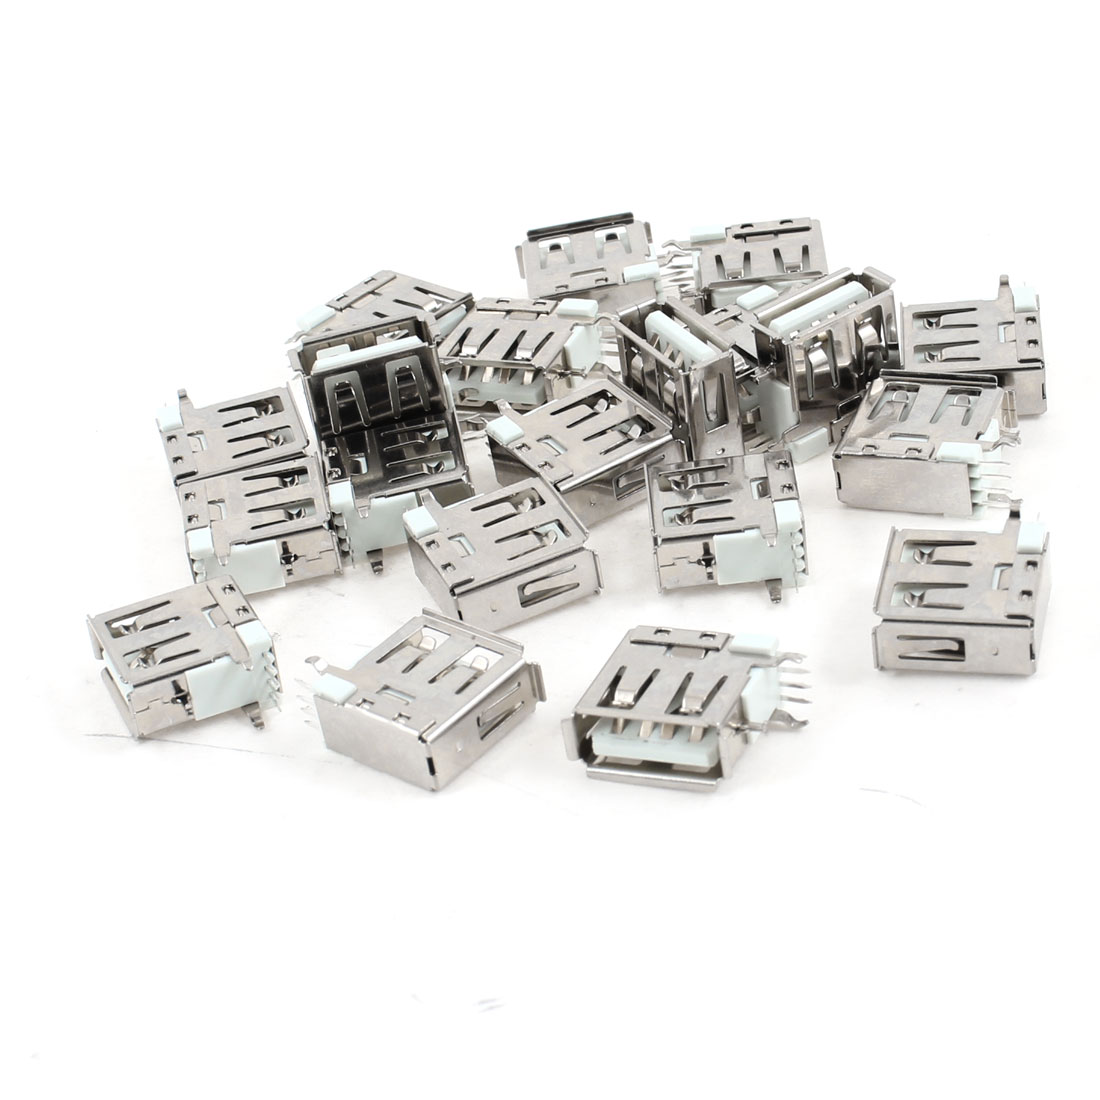 20 Pcs USB 2.0 Type A Female Side DIP Right Angle 4-Pin Jack Socket